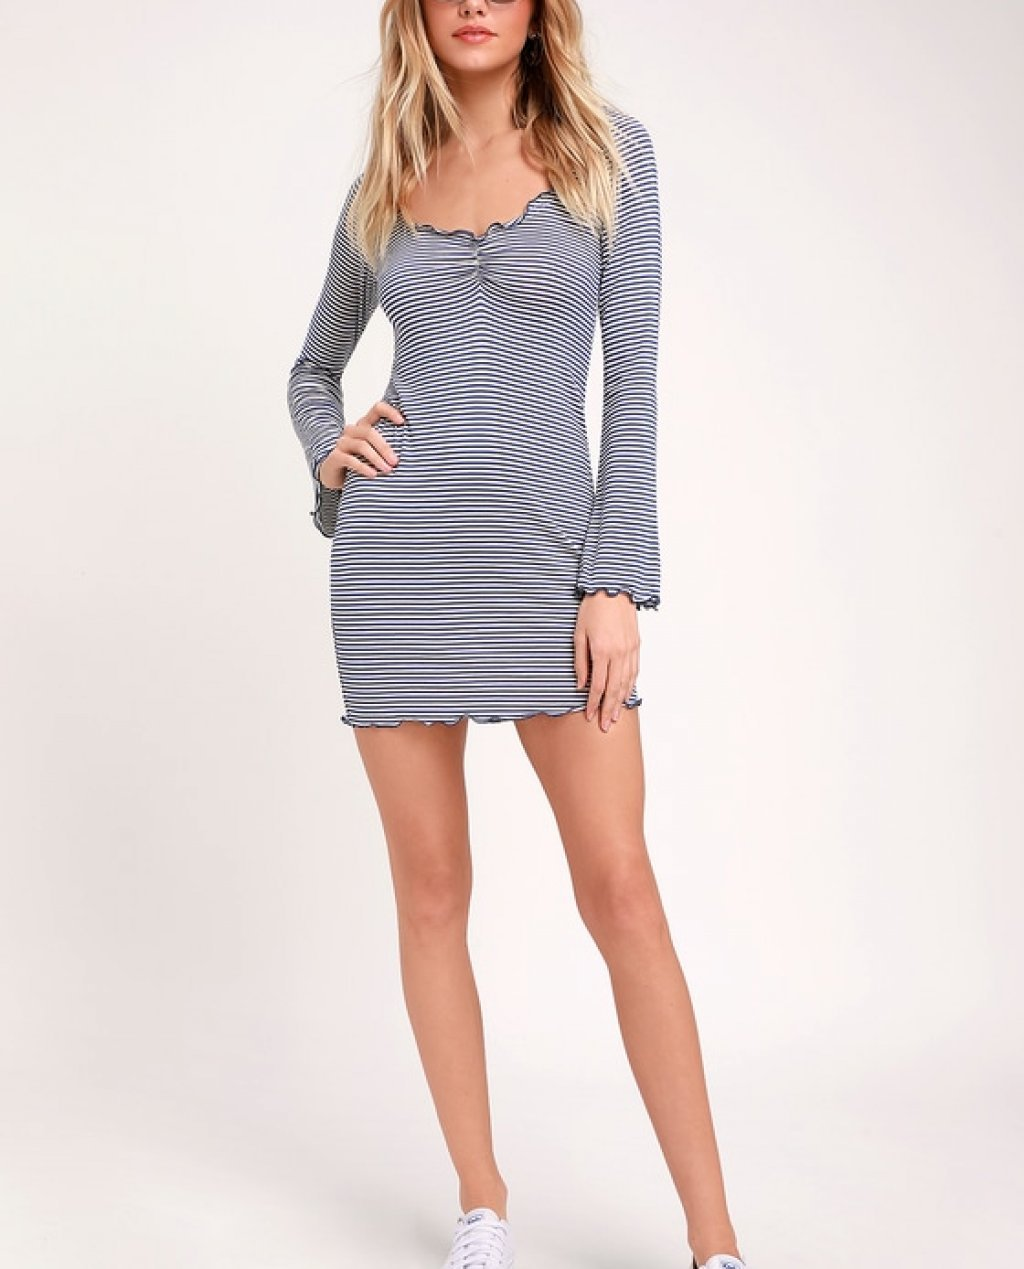 Pucker Blue and White Striped Long Sleeve Bodycon Dress